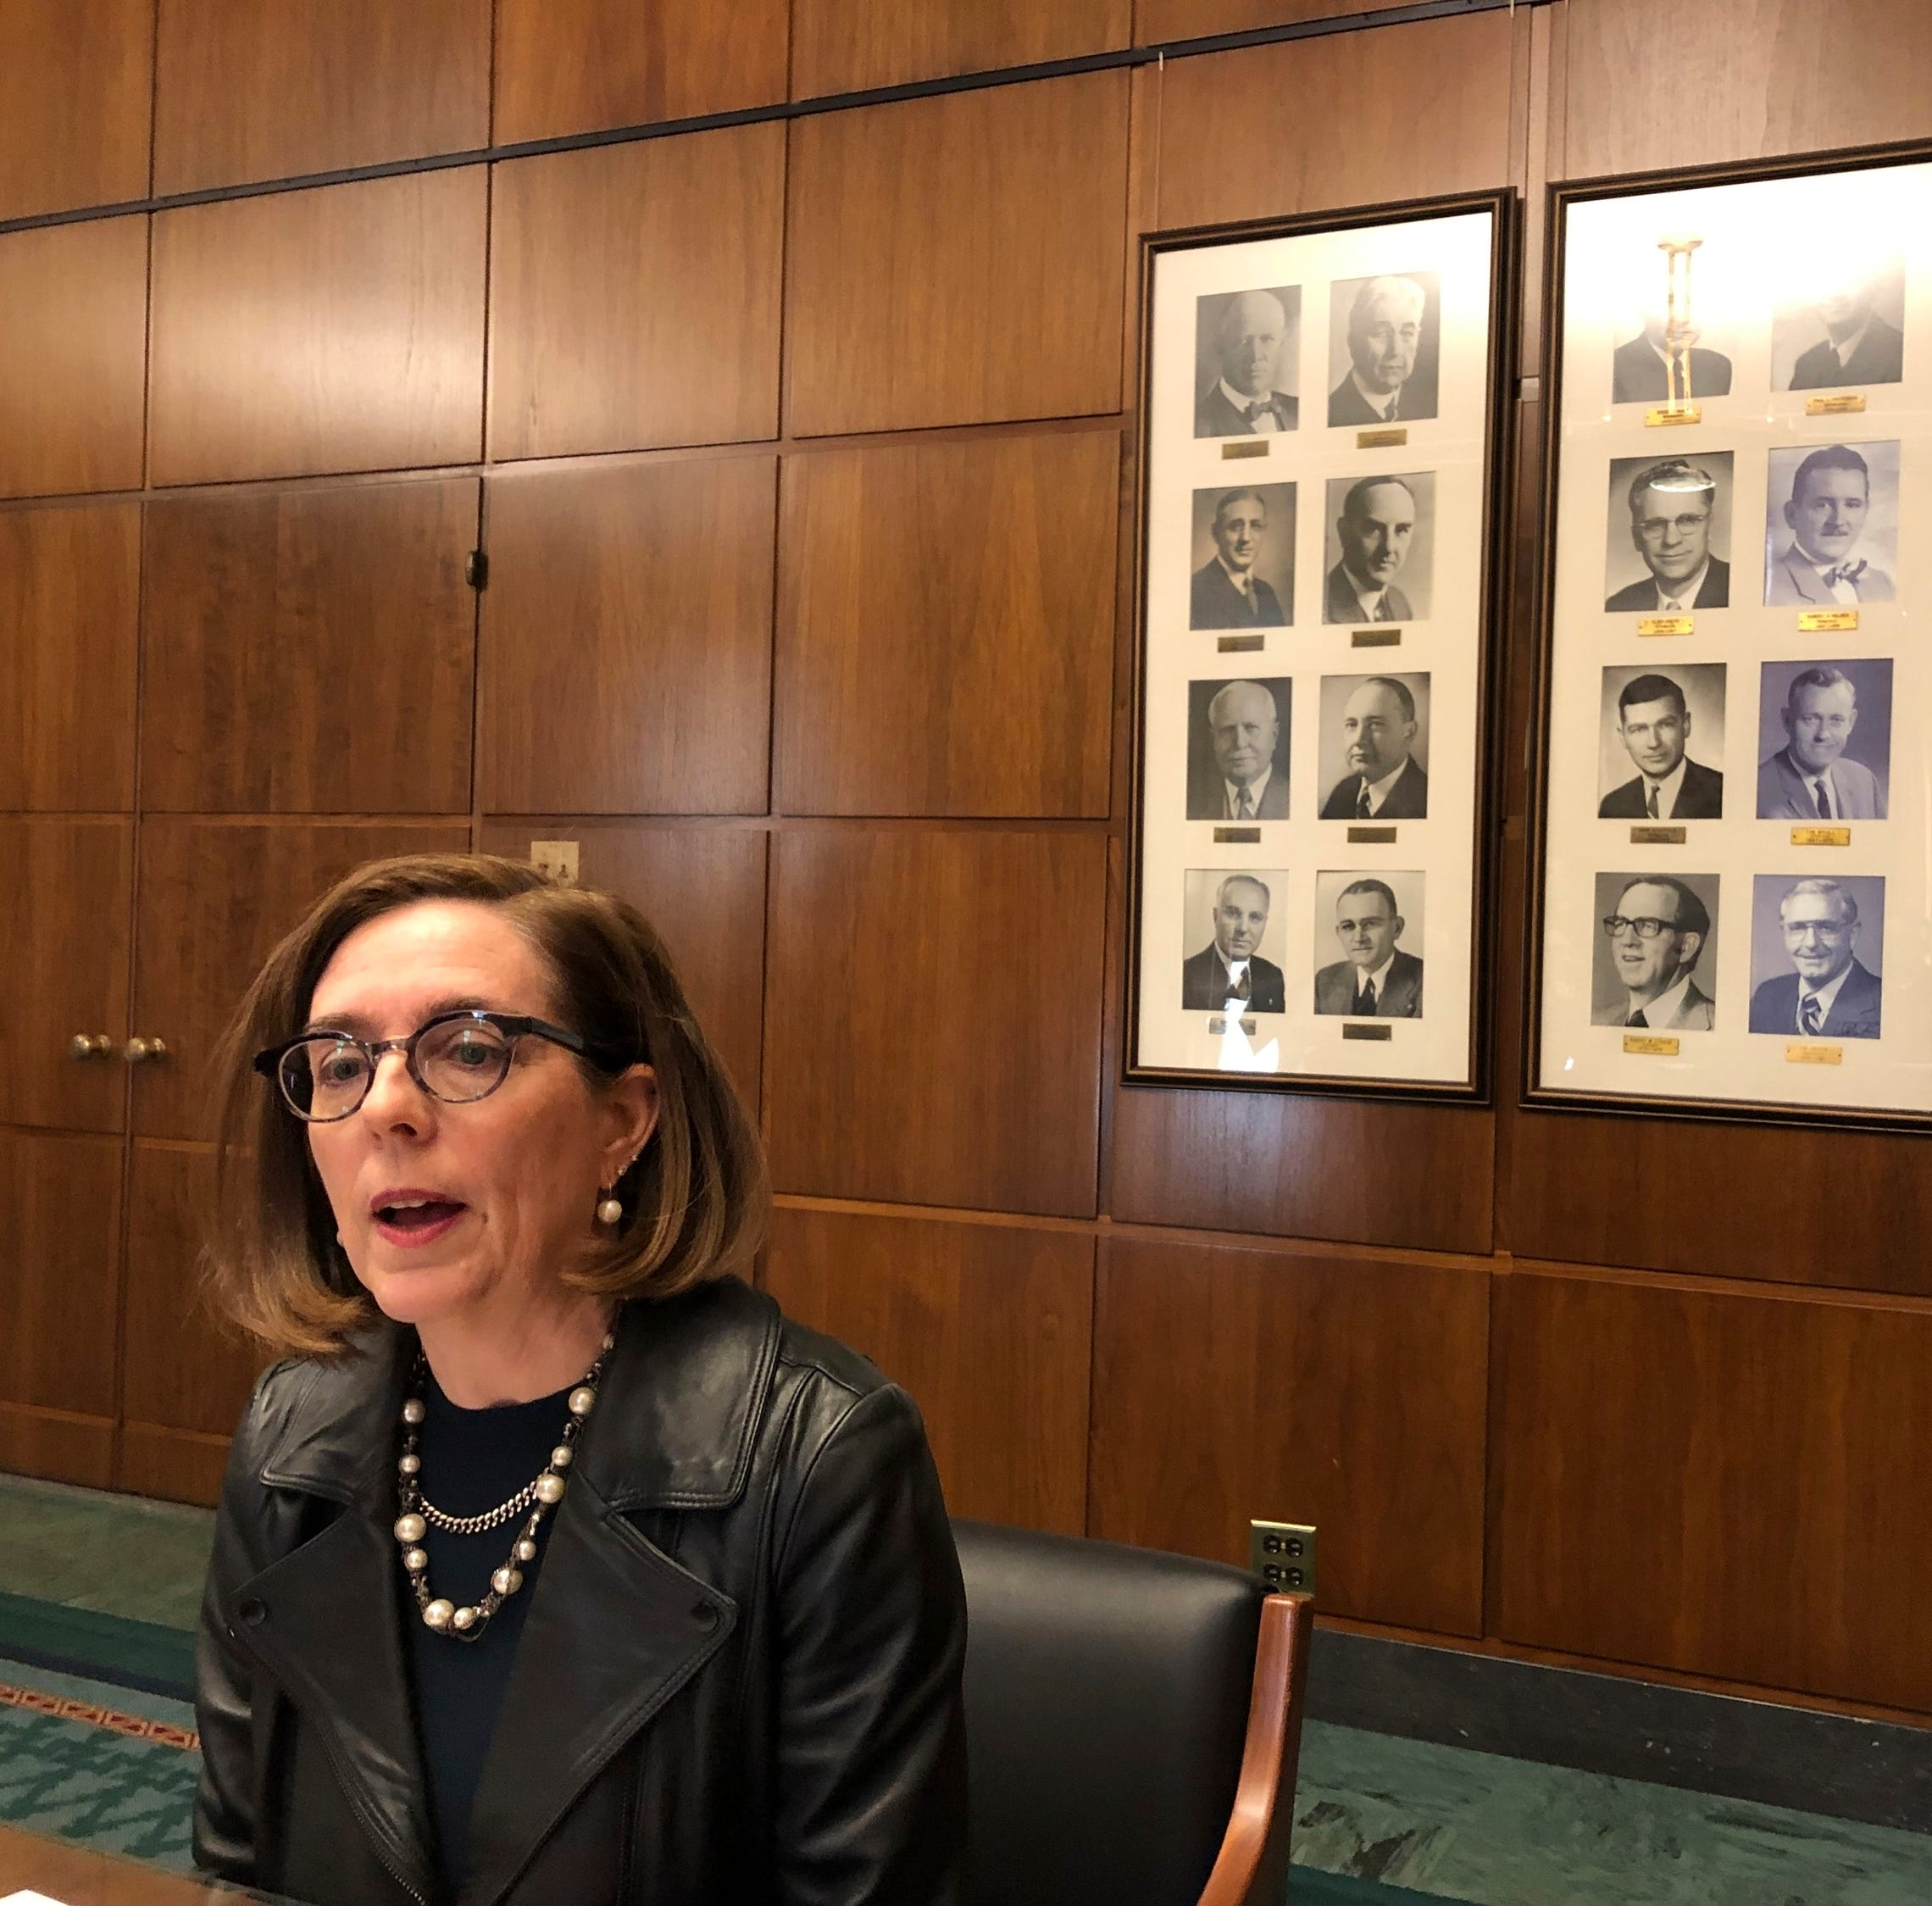 Oregon governor Kate Brown says Virginia's Northam should resign over racist photo